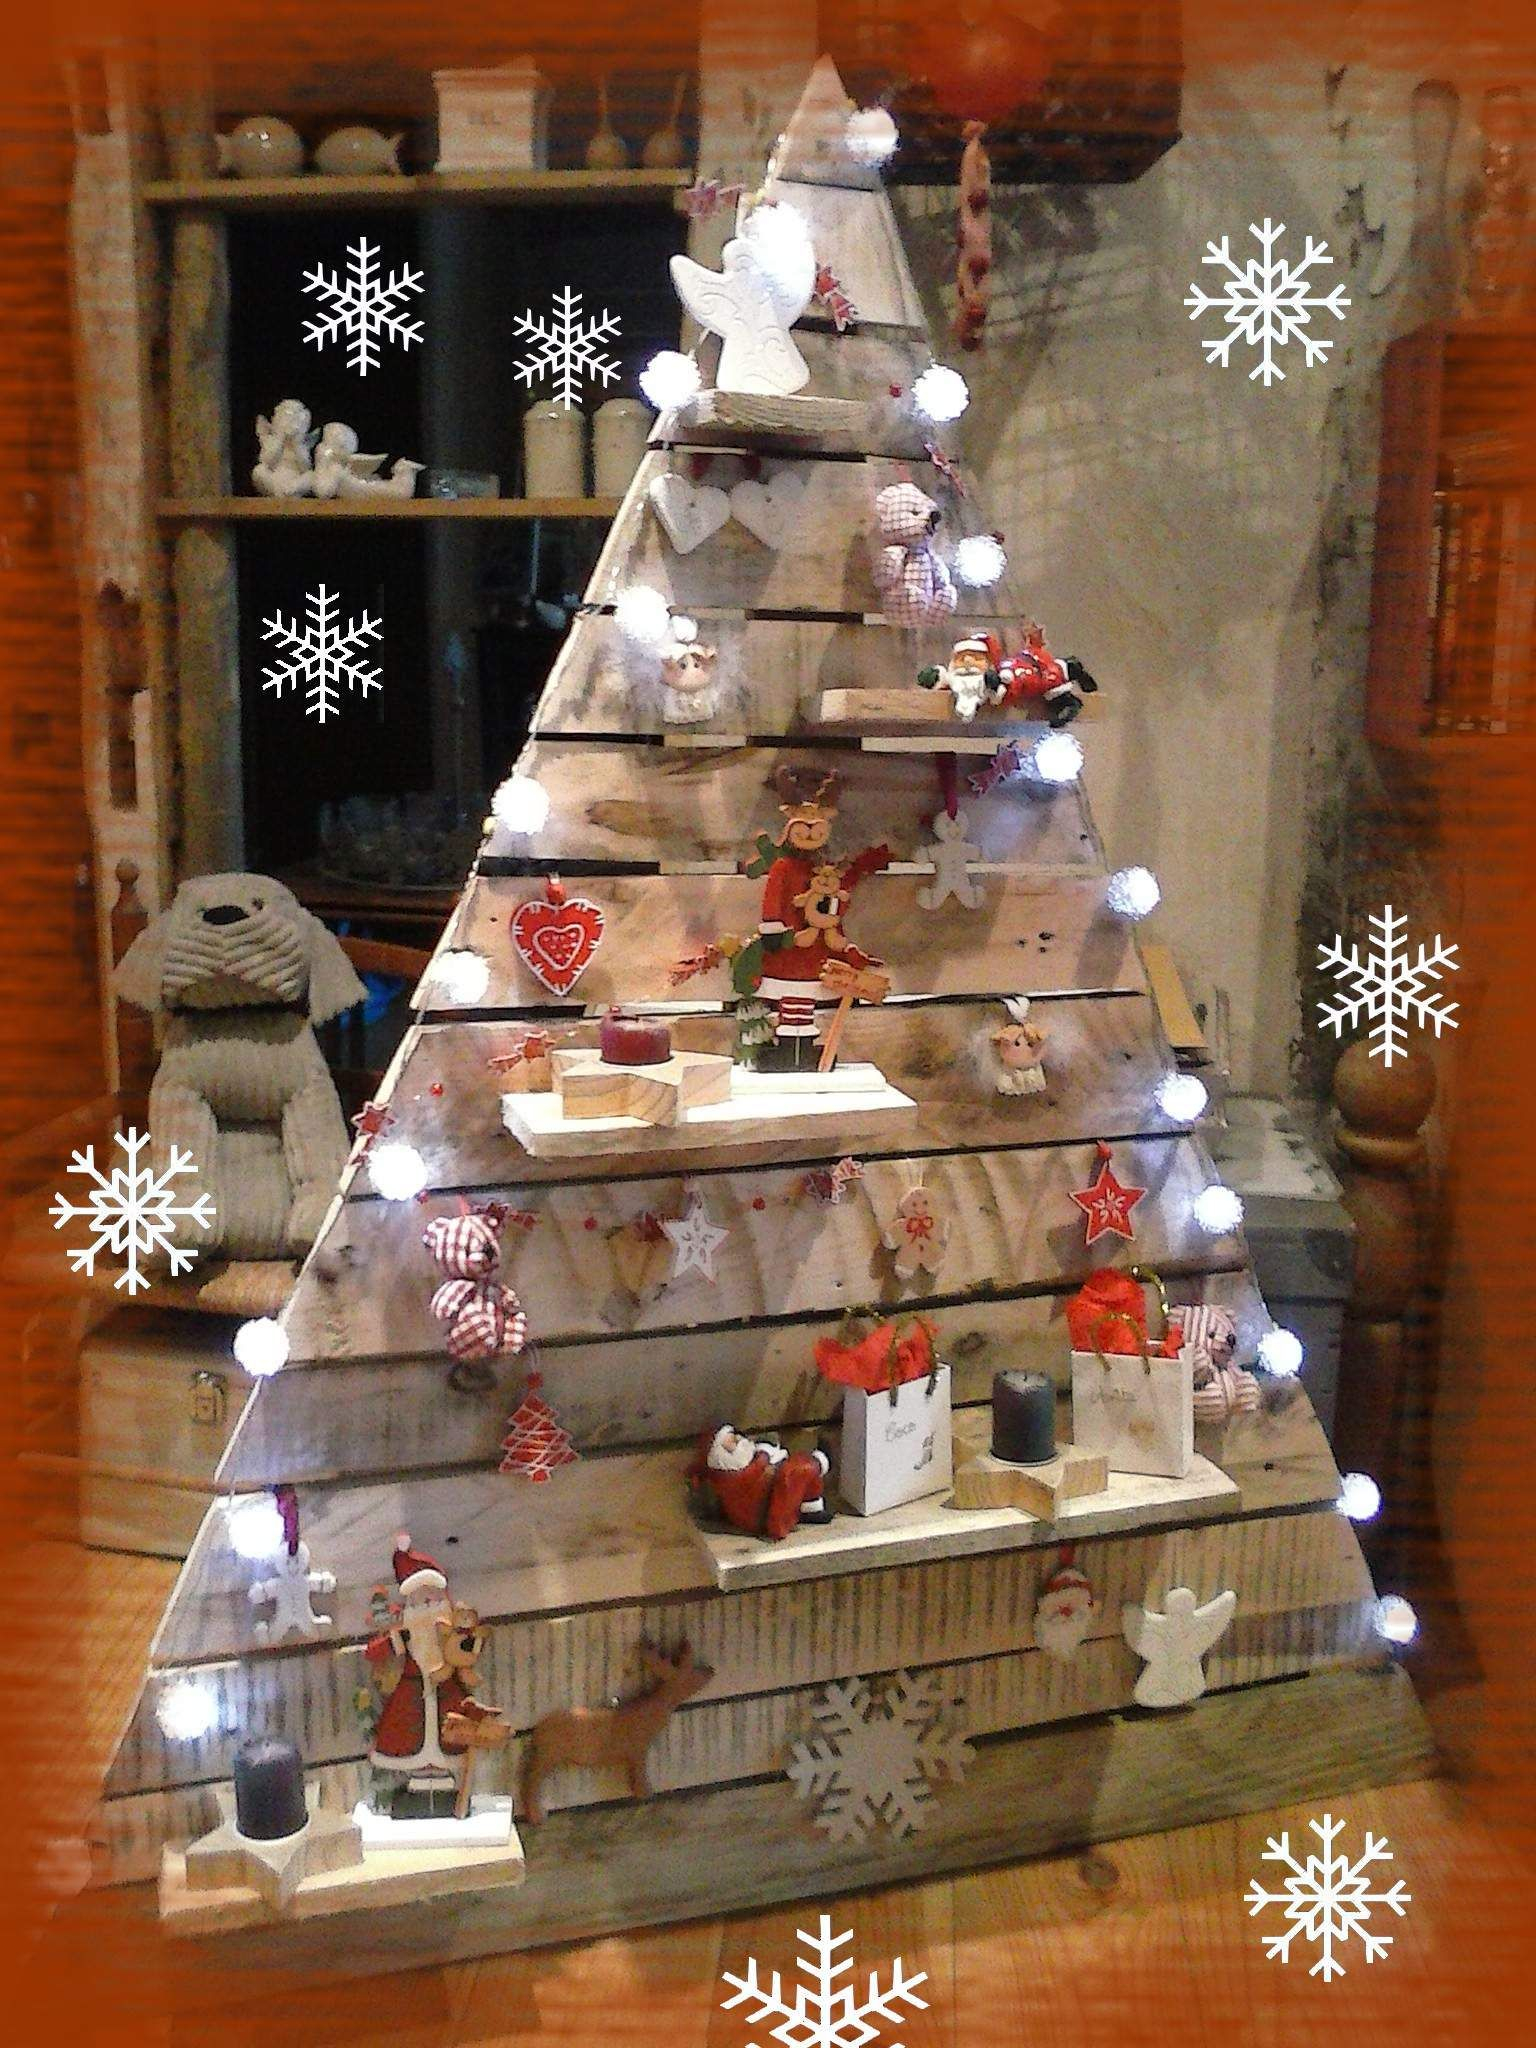 40 pallet christmas trees holiday decorations ideas fun pallet crafts for kids christmas tree decorations - Pallet Christmas Decoration Ideas